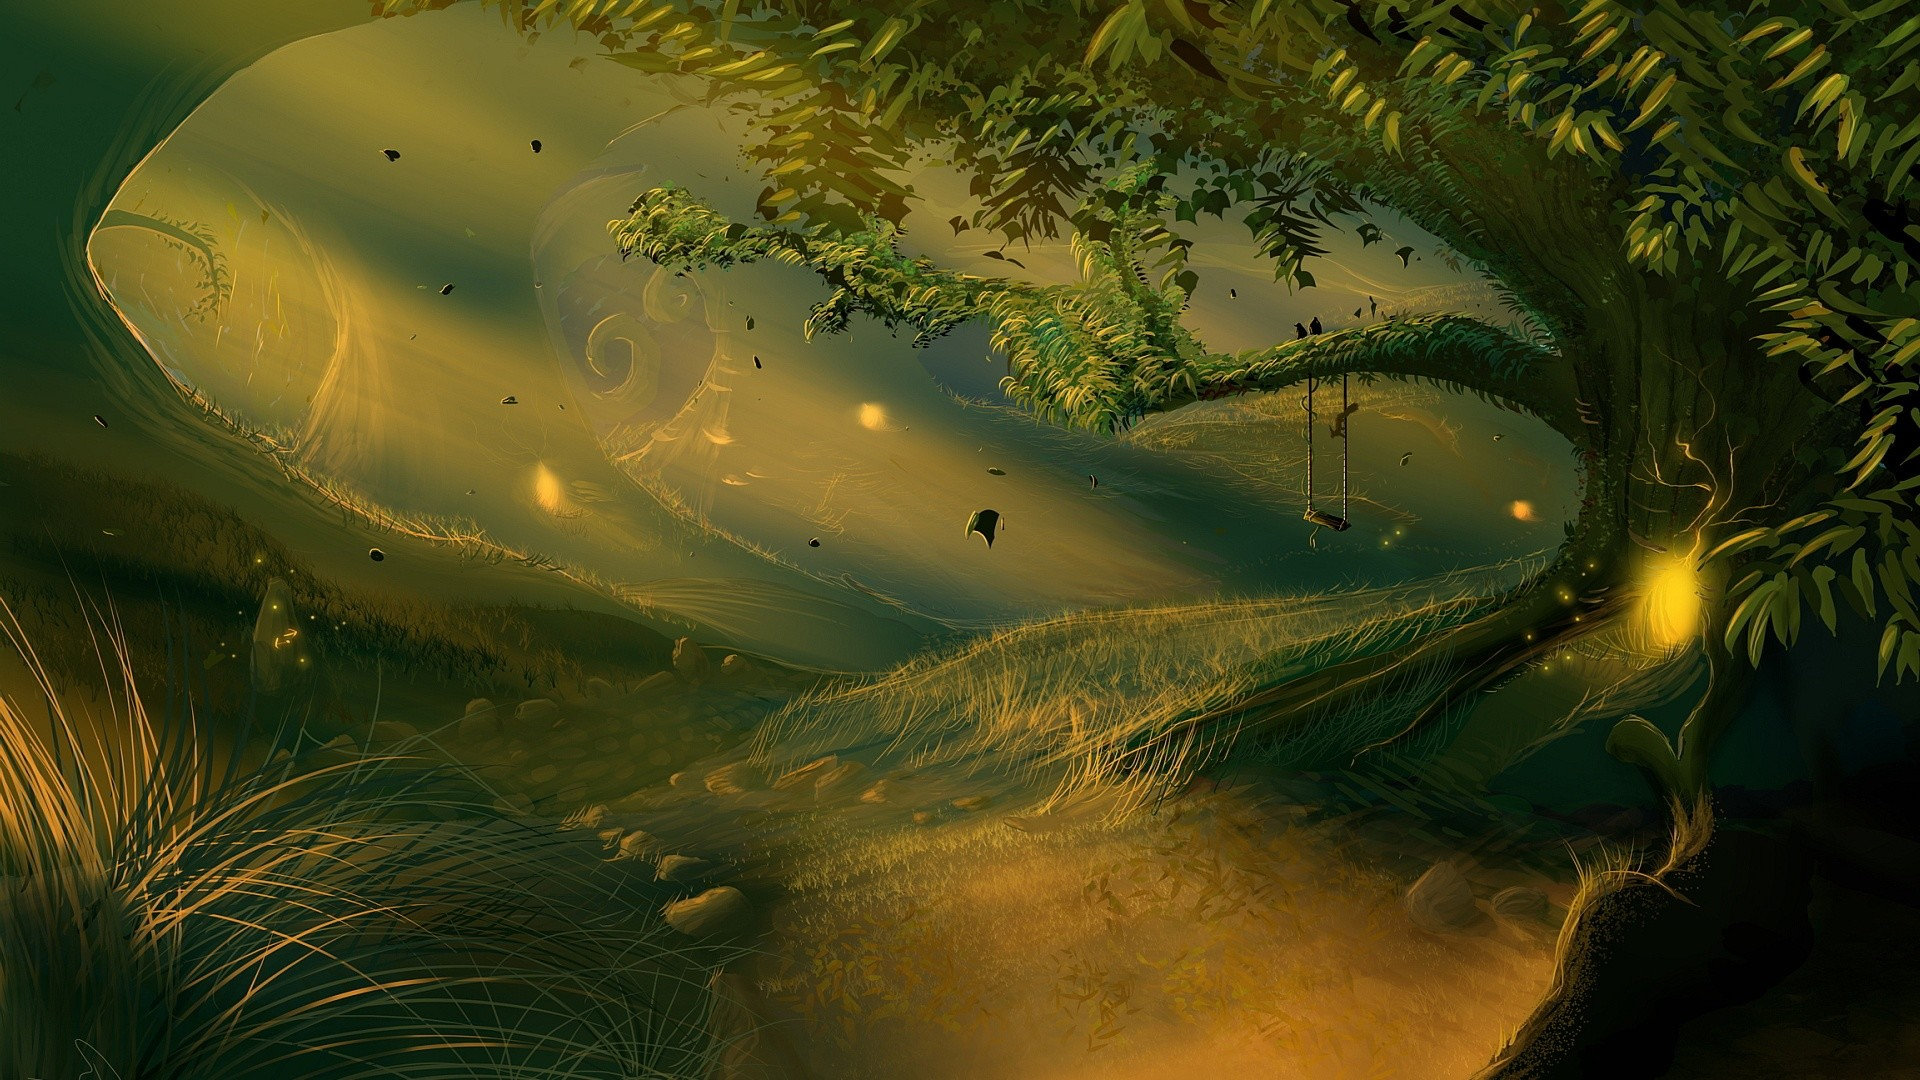 Fantasy Forest Backgrounds | wallpapers scenery wallpaper qsmejk green fantasy  forest landscope